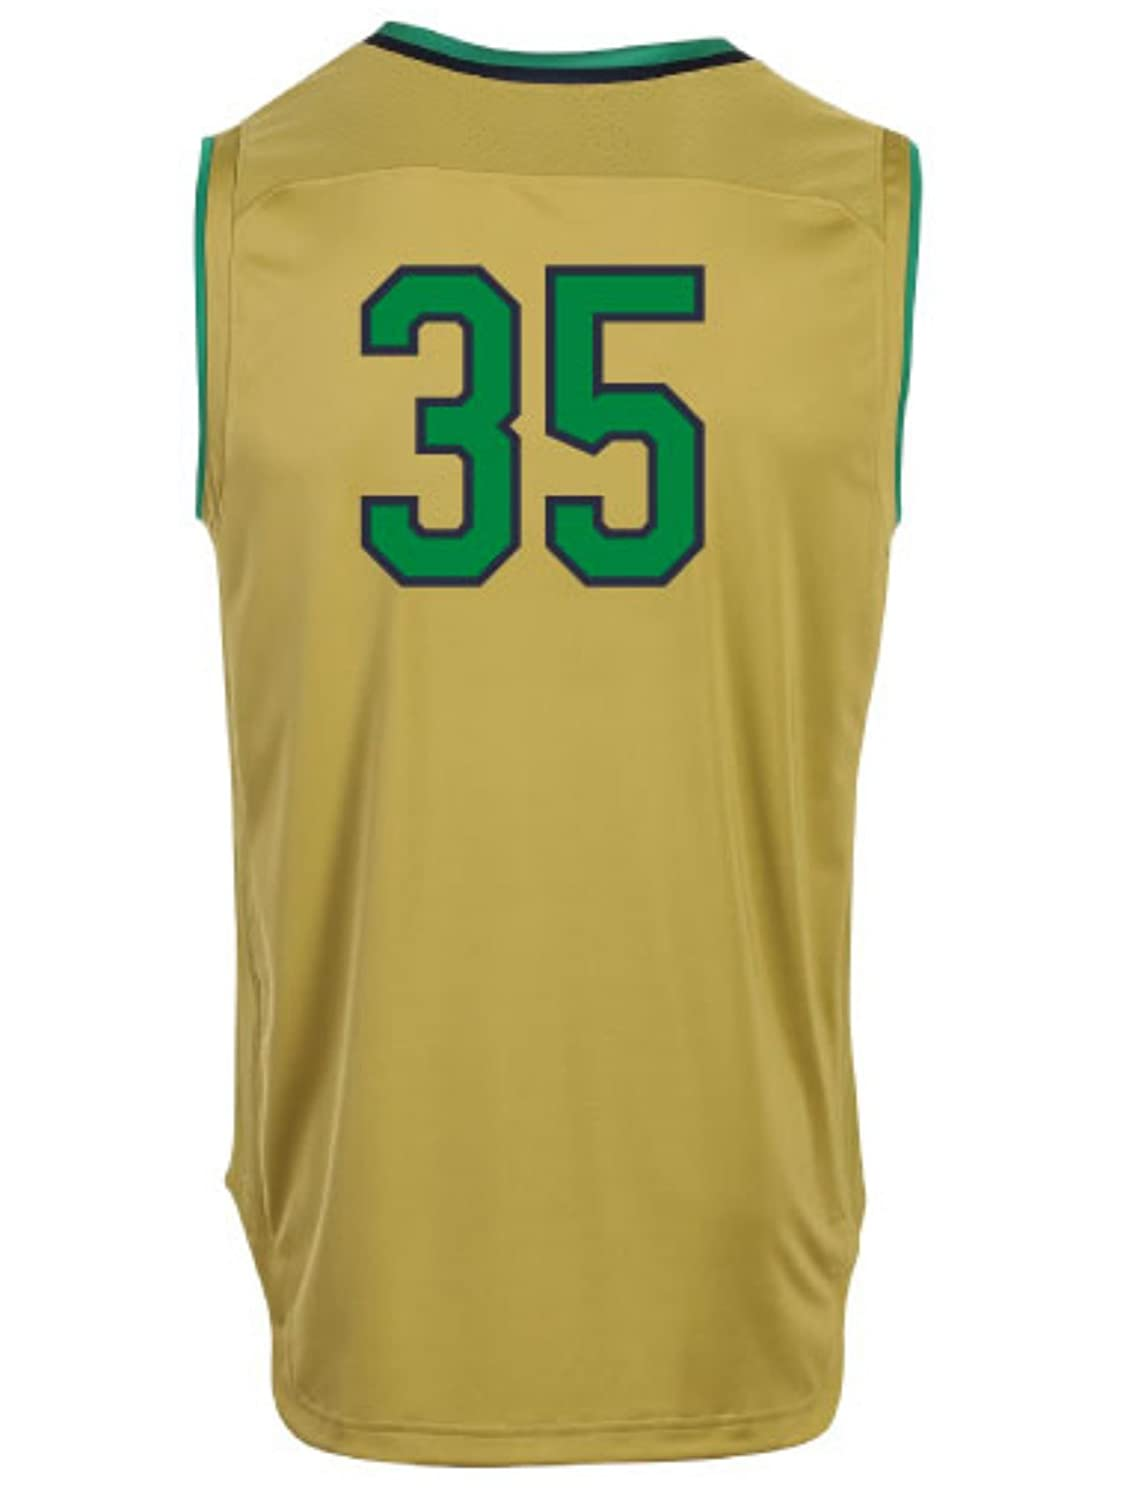 on sale 1948a 3c09a Notre Dame Fighting Irish Under Armour NCAA Basketball ...